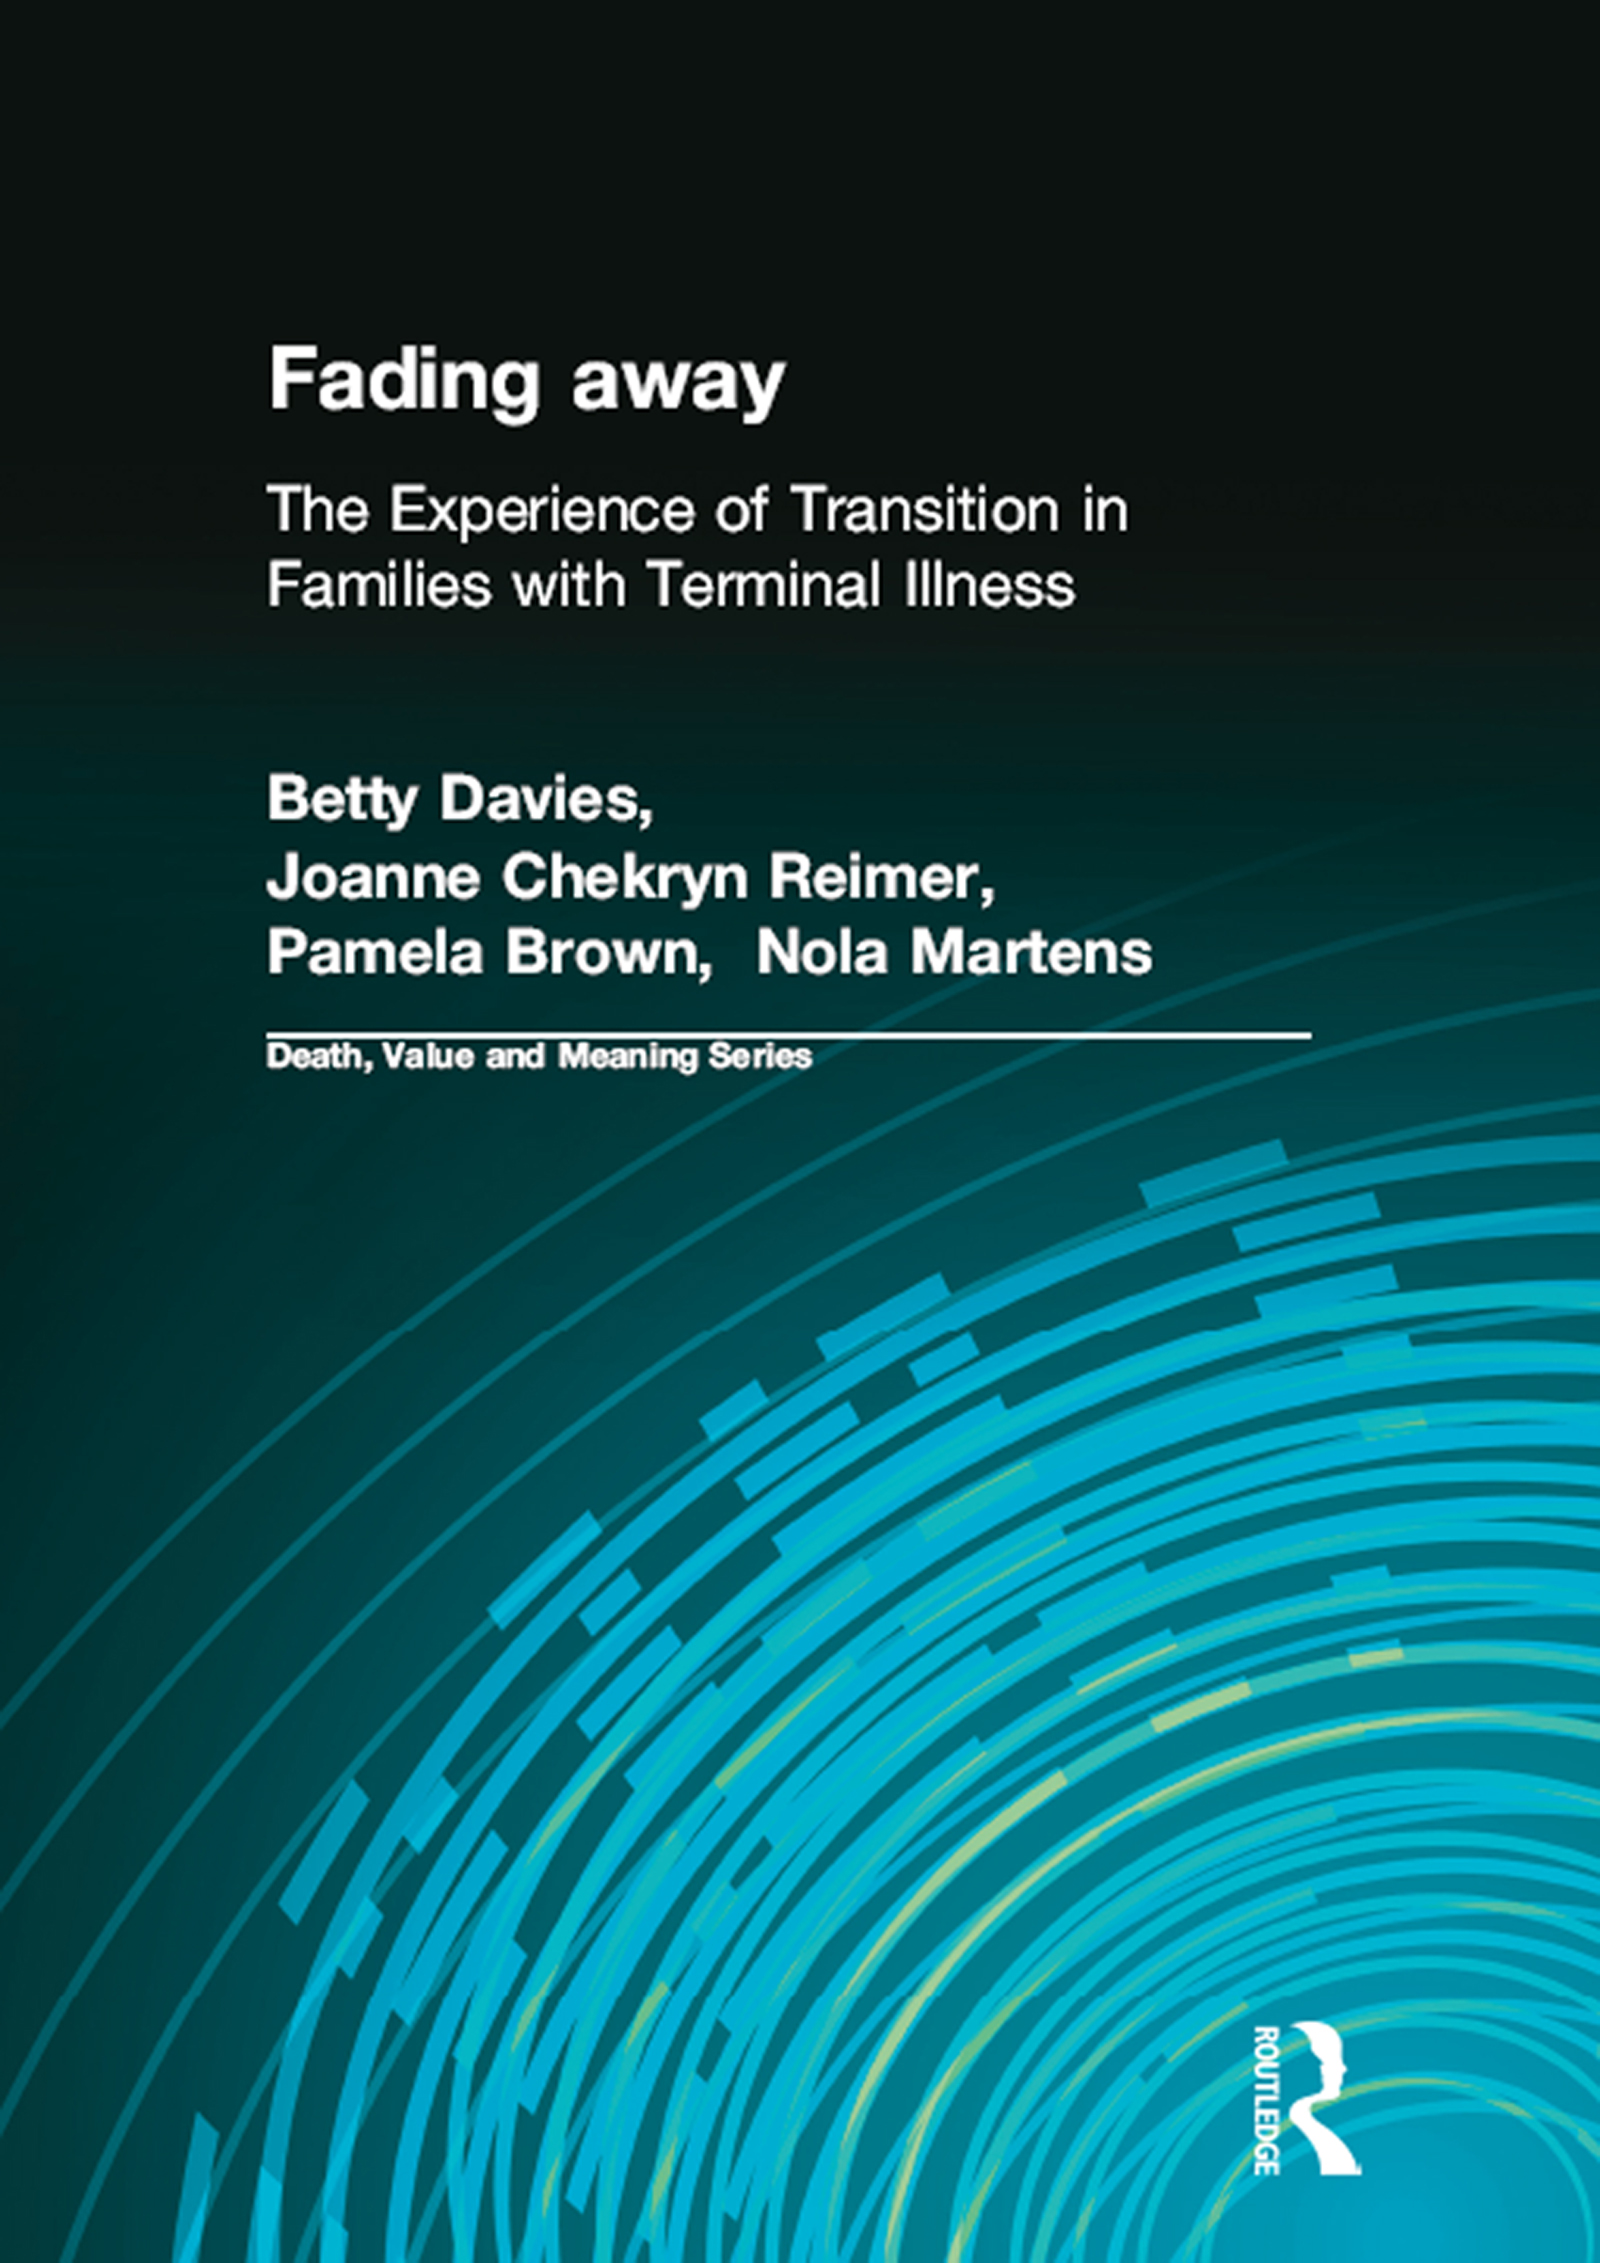 Fading away: The Experience of Transition in Families with Terminal Illness book cover